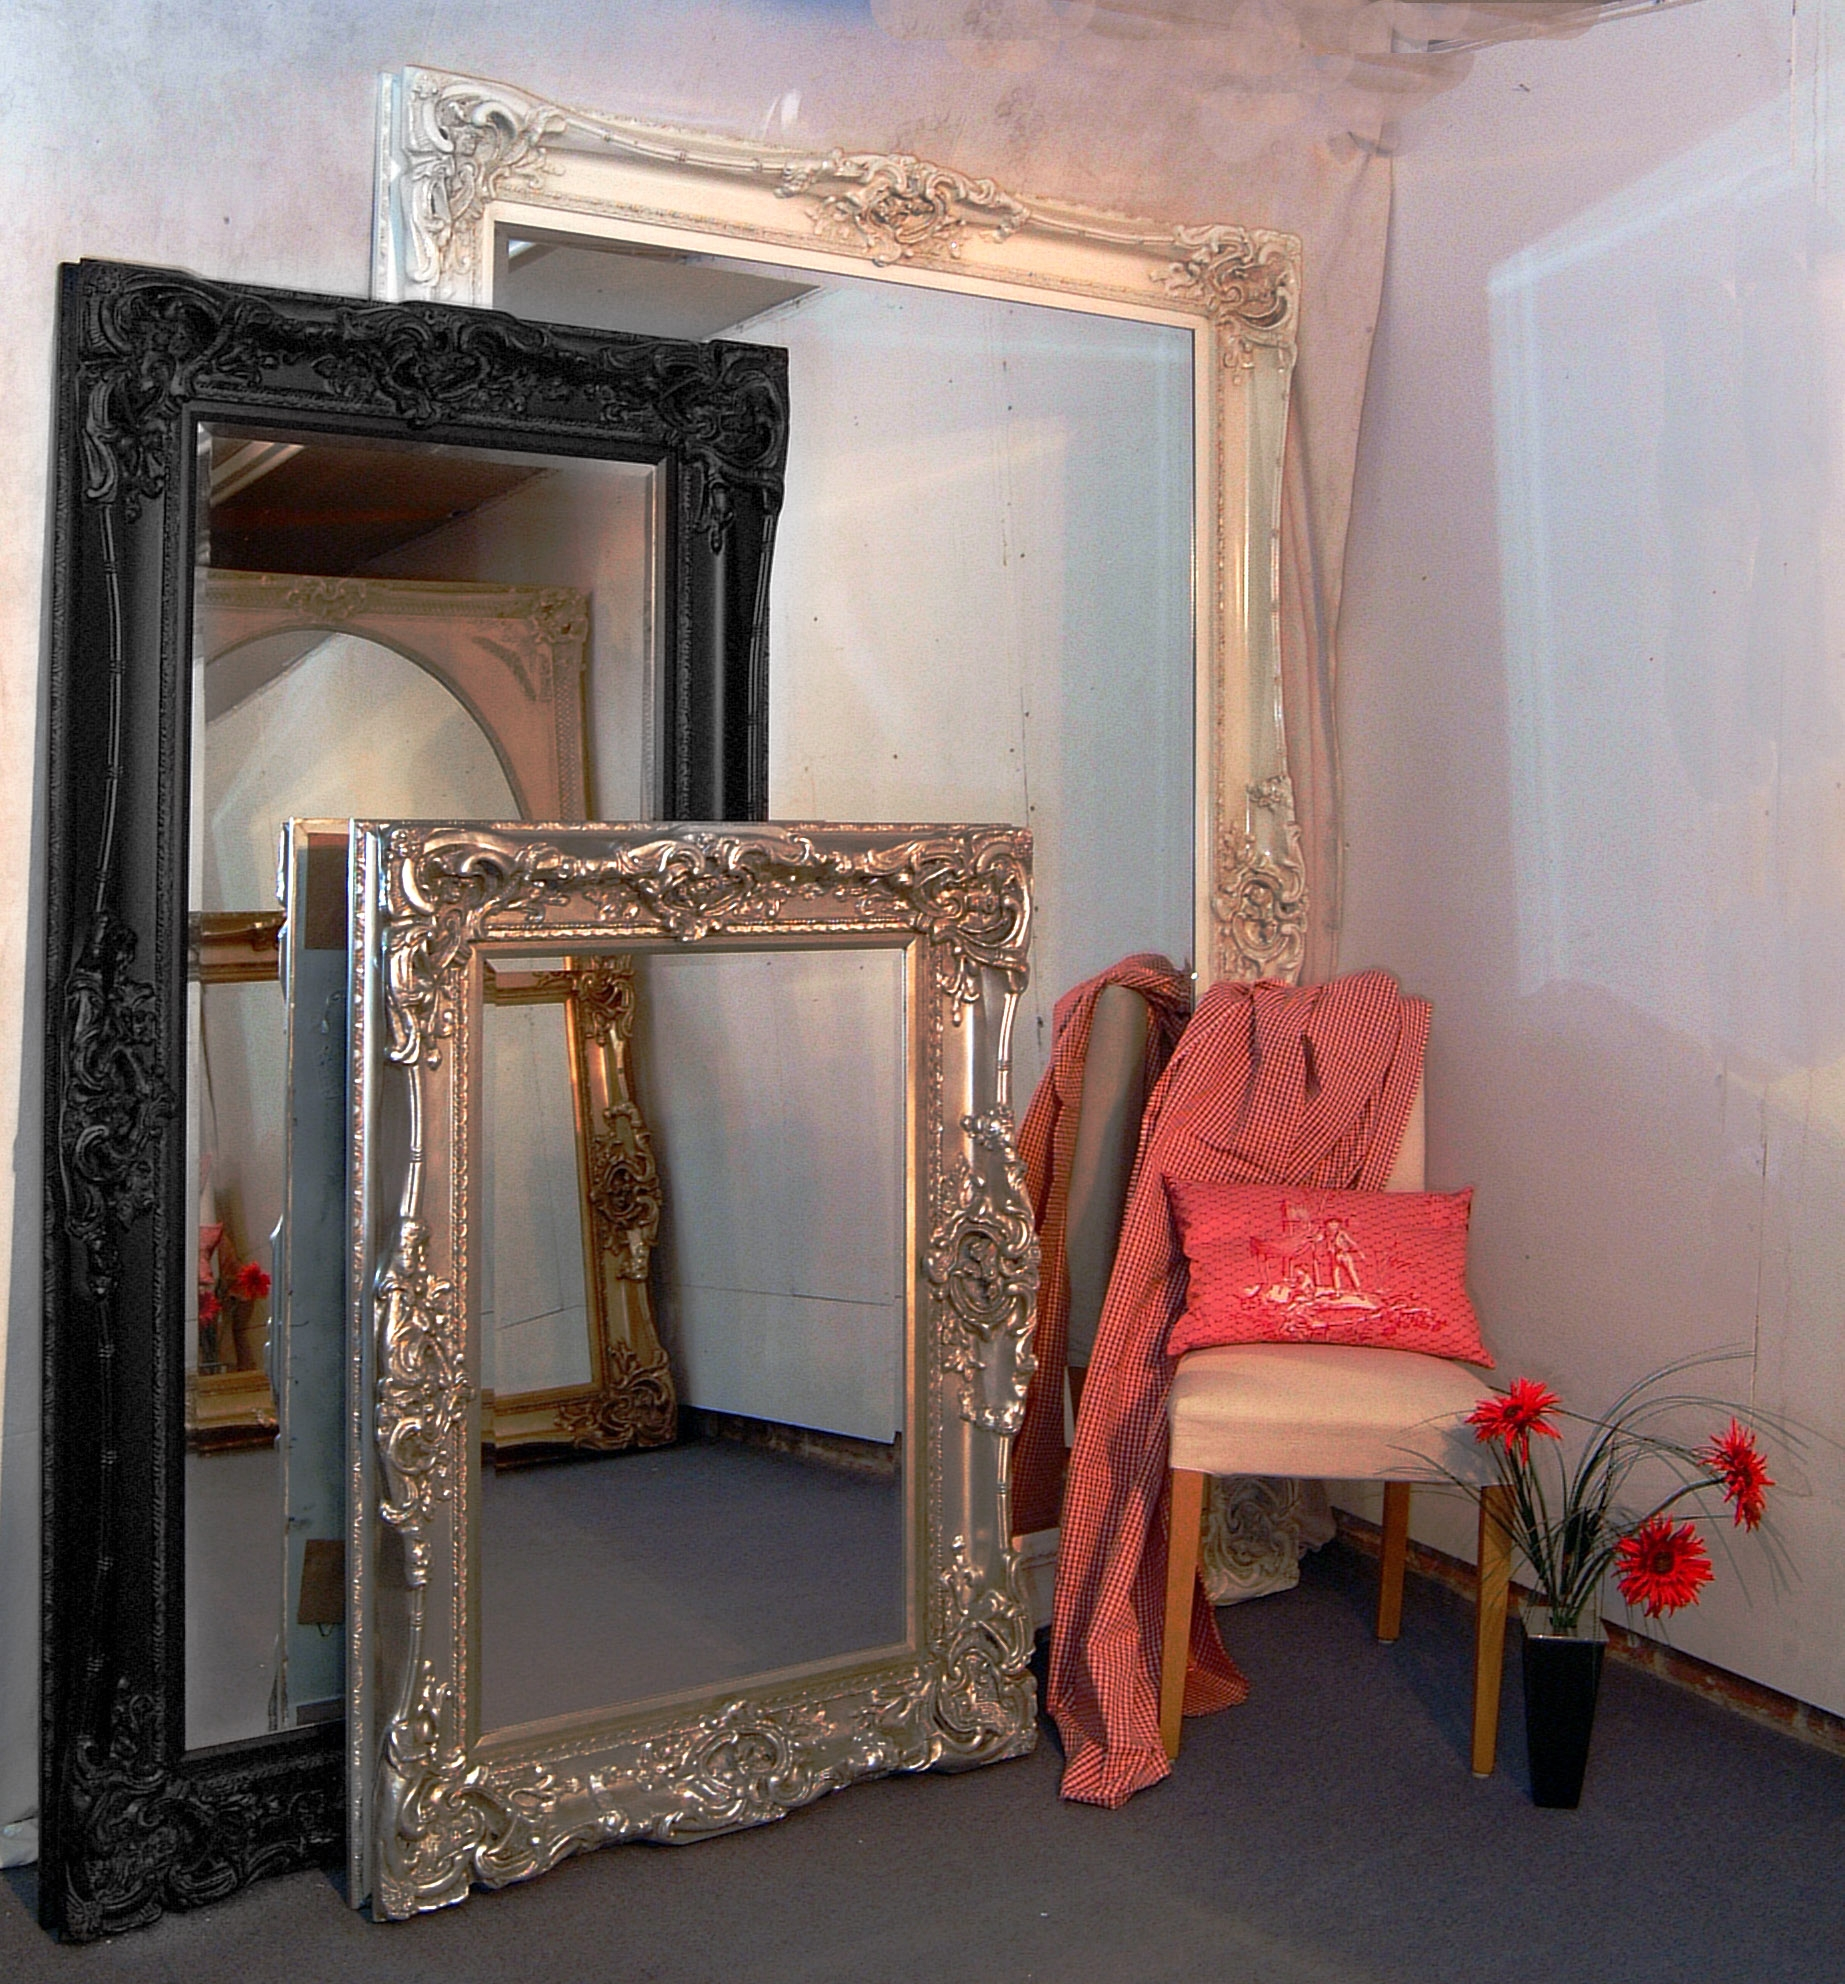 Ivory Mirrors Ornate Mirrors Large Mirrors Antique Regarding Reproduction Mirrors (View 4 of 15)